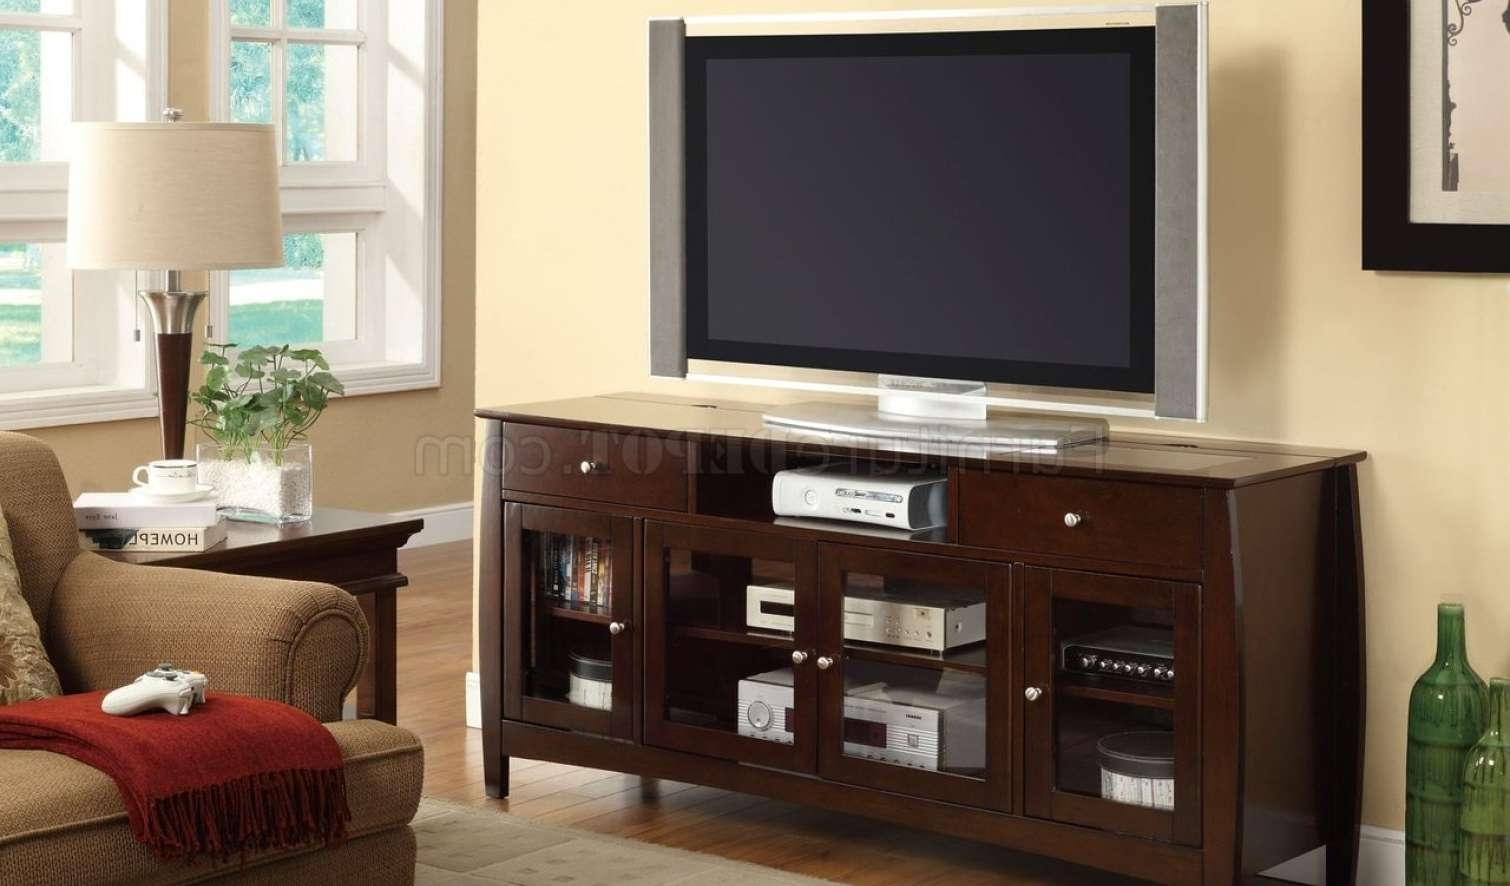 Tv : Tv Stand Images Amazing Stands And Deliver Tv Stands Buy Avf Intended For Stand And Deliver Tv Stands (View 11 of 20)